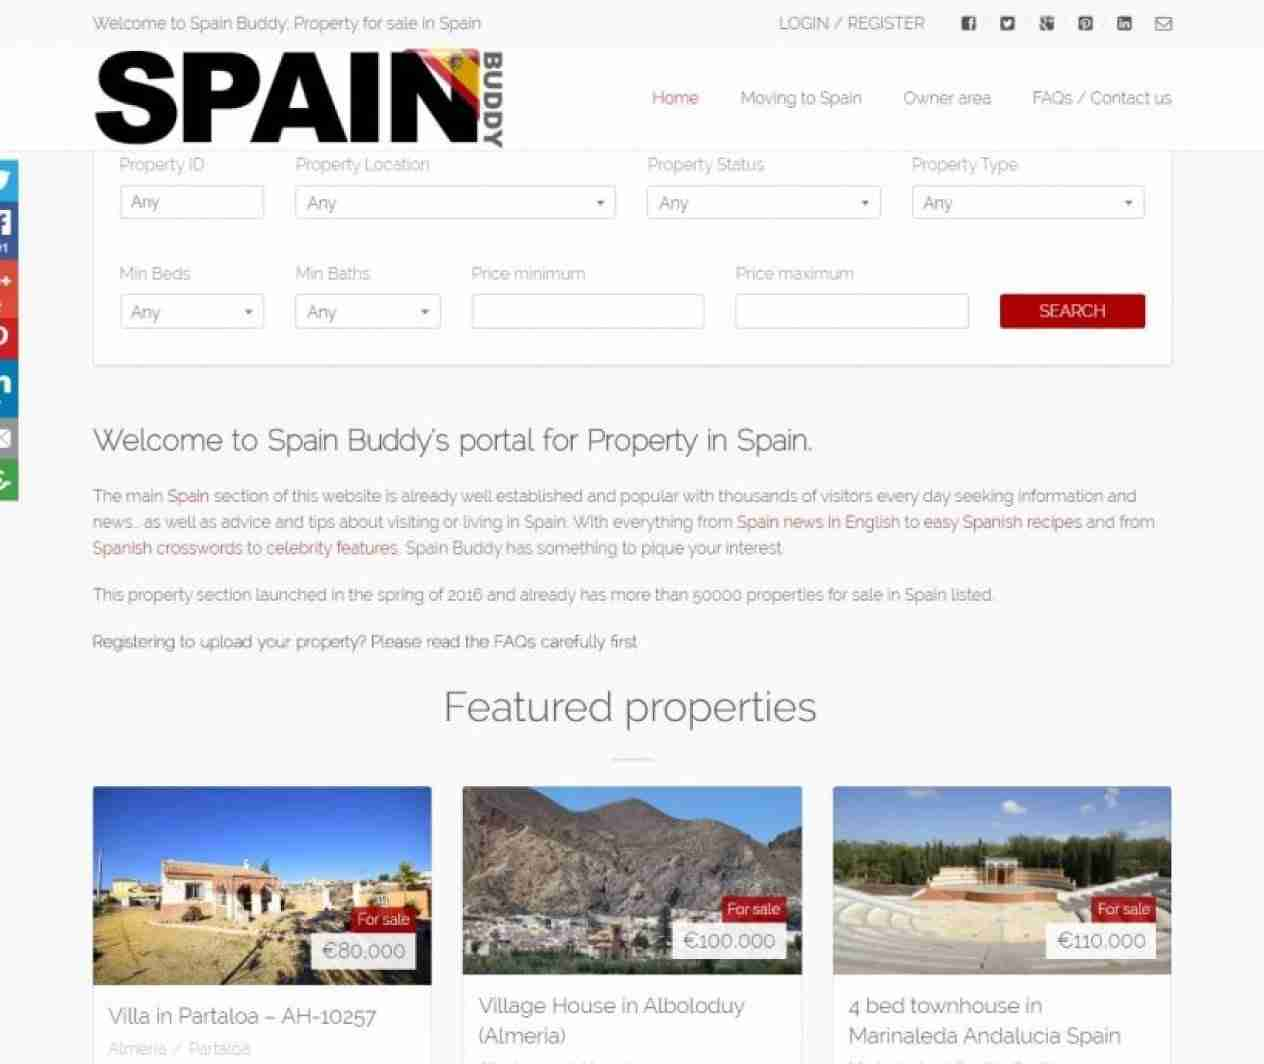 Spain Buddy Property